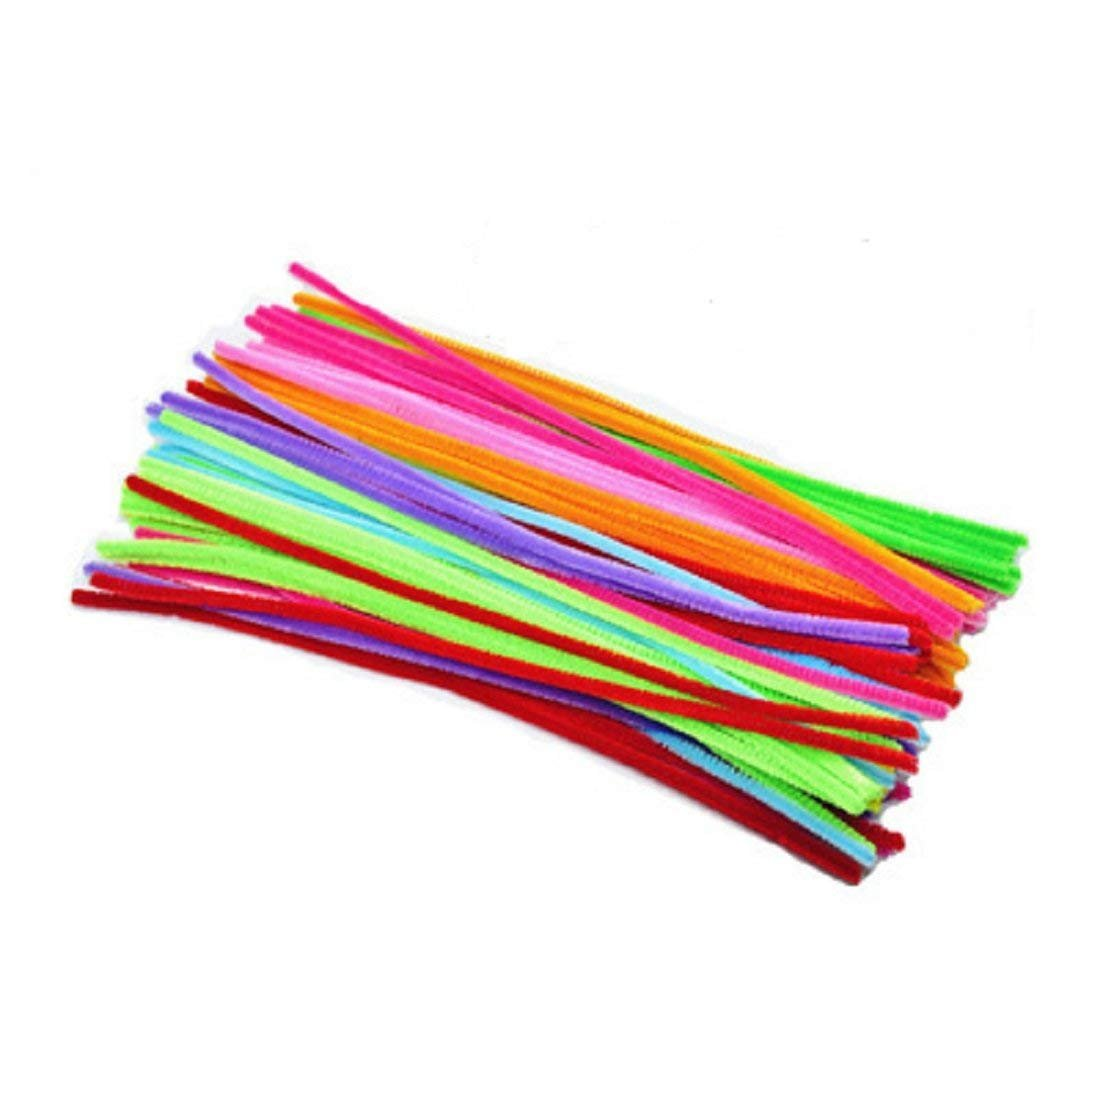 200Pieces Bendaroos Montessori Materials Math Chenille Stems Sticks Puzzle Craft Children Pipe Cleaner Pipe Cleaners Chenille Stem Educational Creative Toy,Light Color Mix